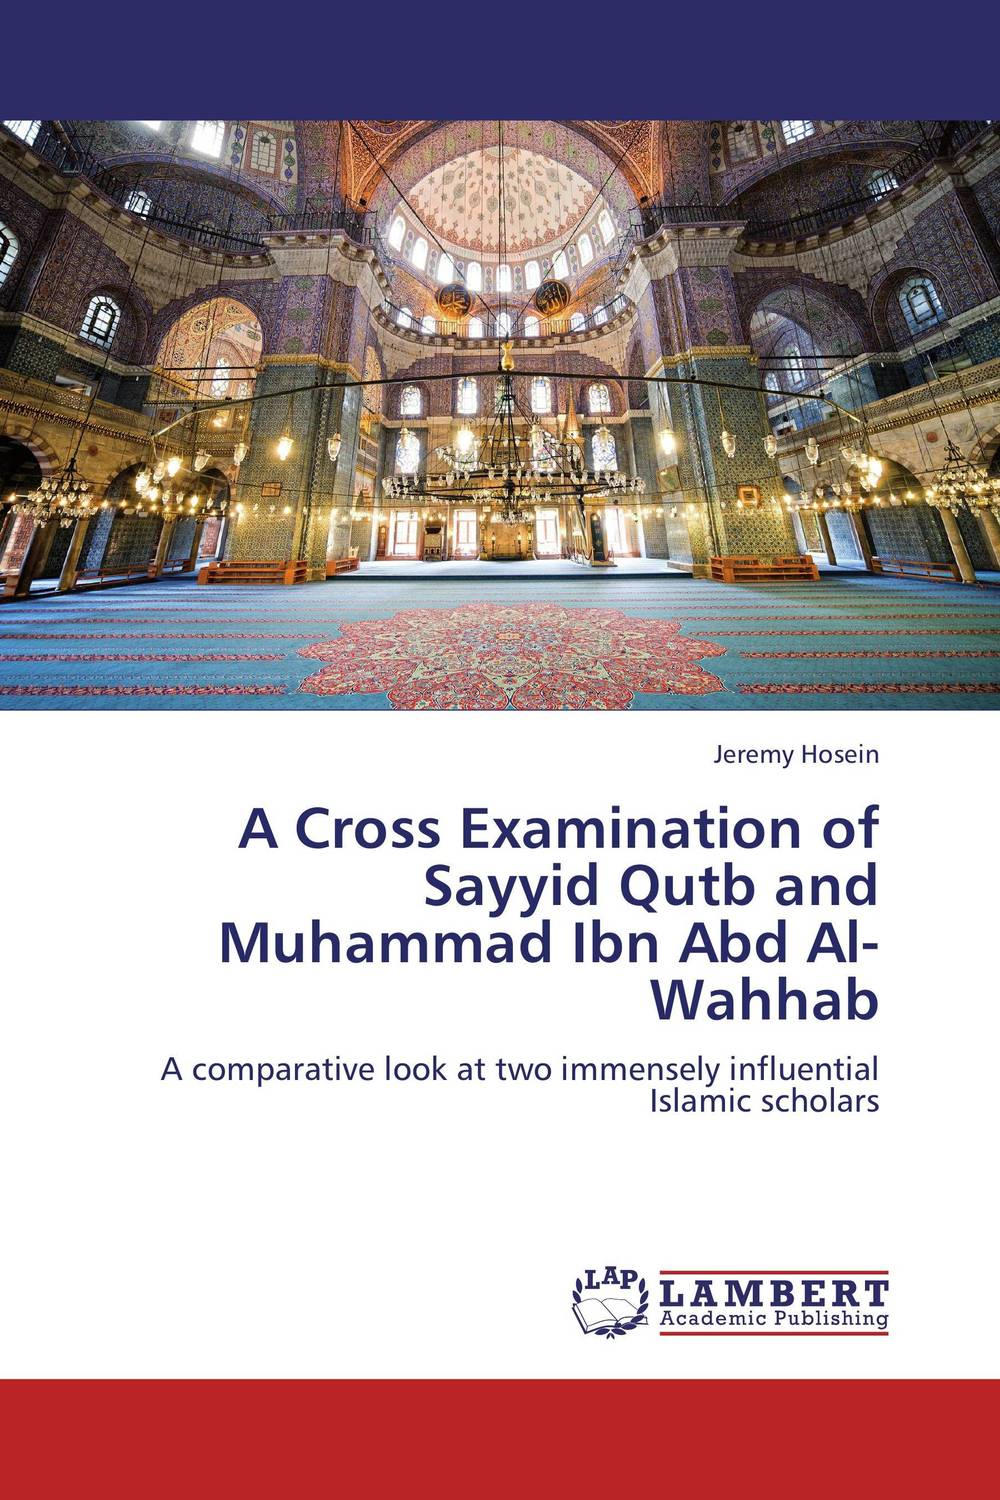 A Cross Examination of Sayyid Qutb and Muhammad Ibn Abd Al-Wahhab muhammad usman mahmood ahmad and asadullah madni pharmacokinetics and bioavailability of silymarin